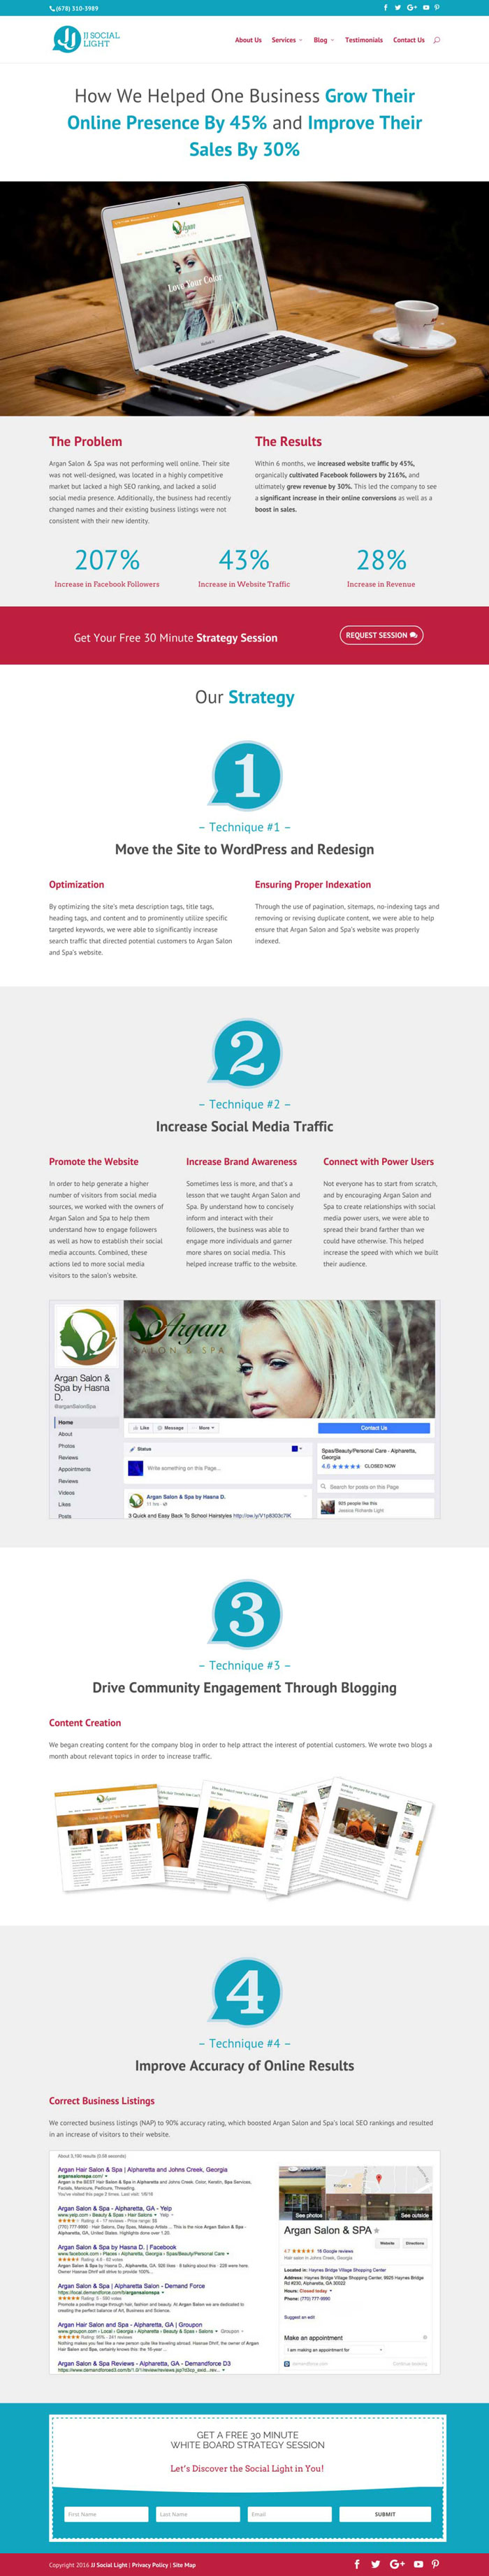 JJ Social Light Landing Page - Online Marketing Client Case Study